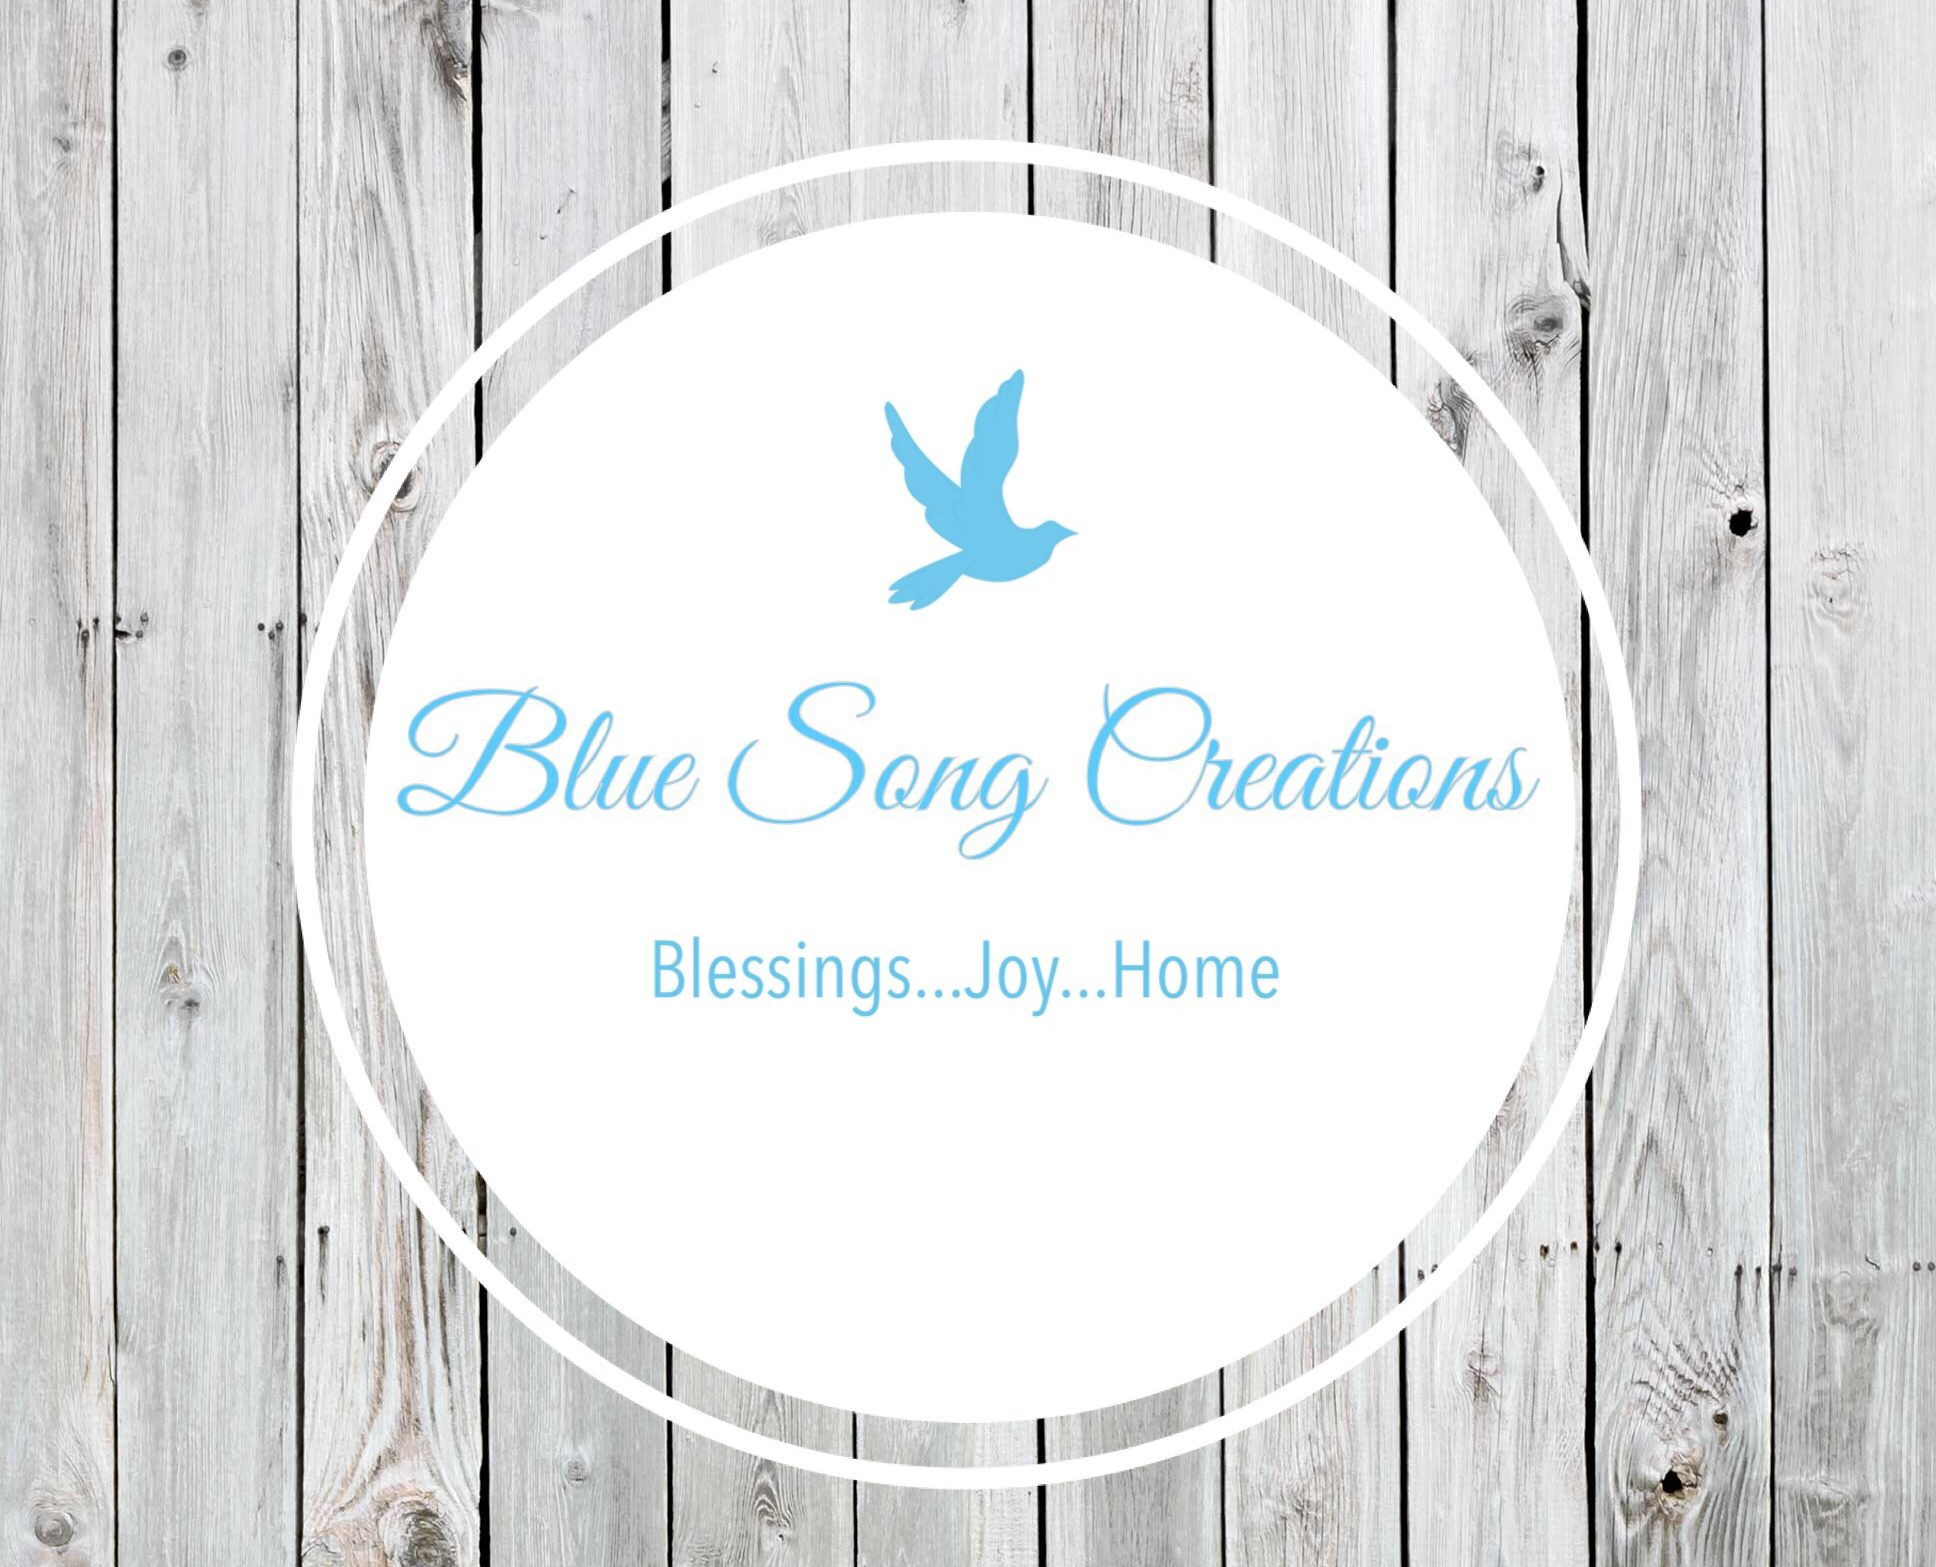 Blue Song Creations